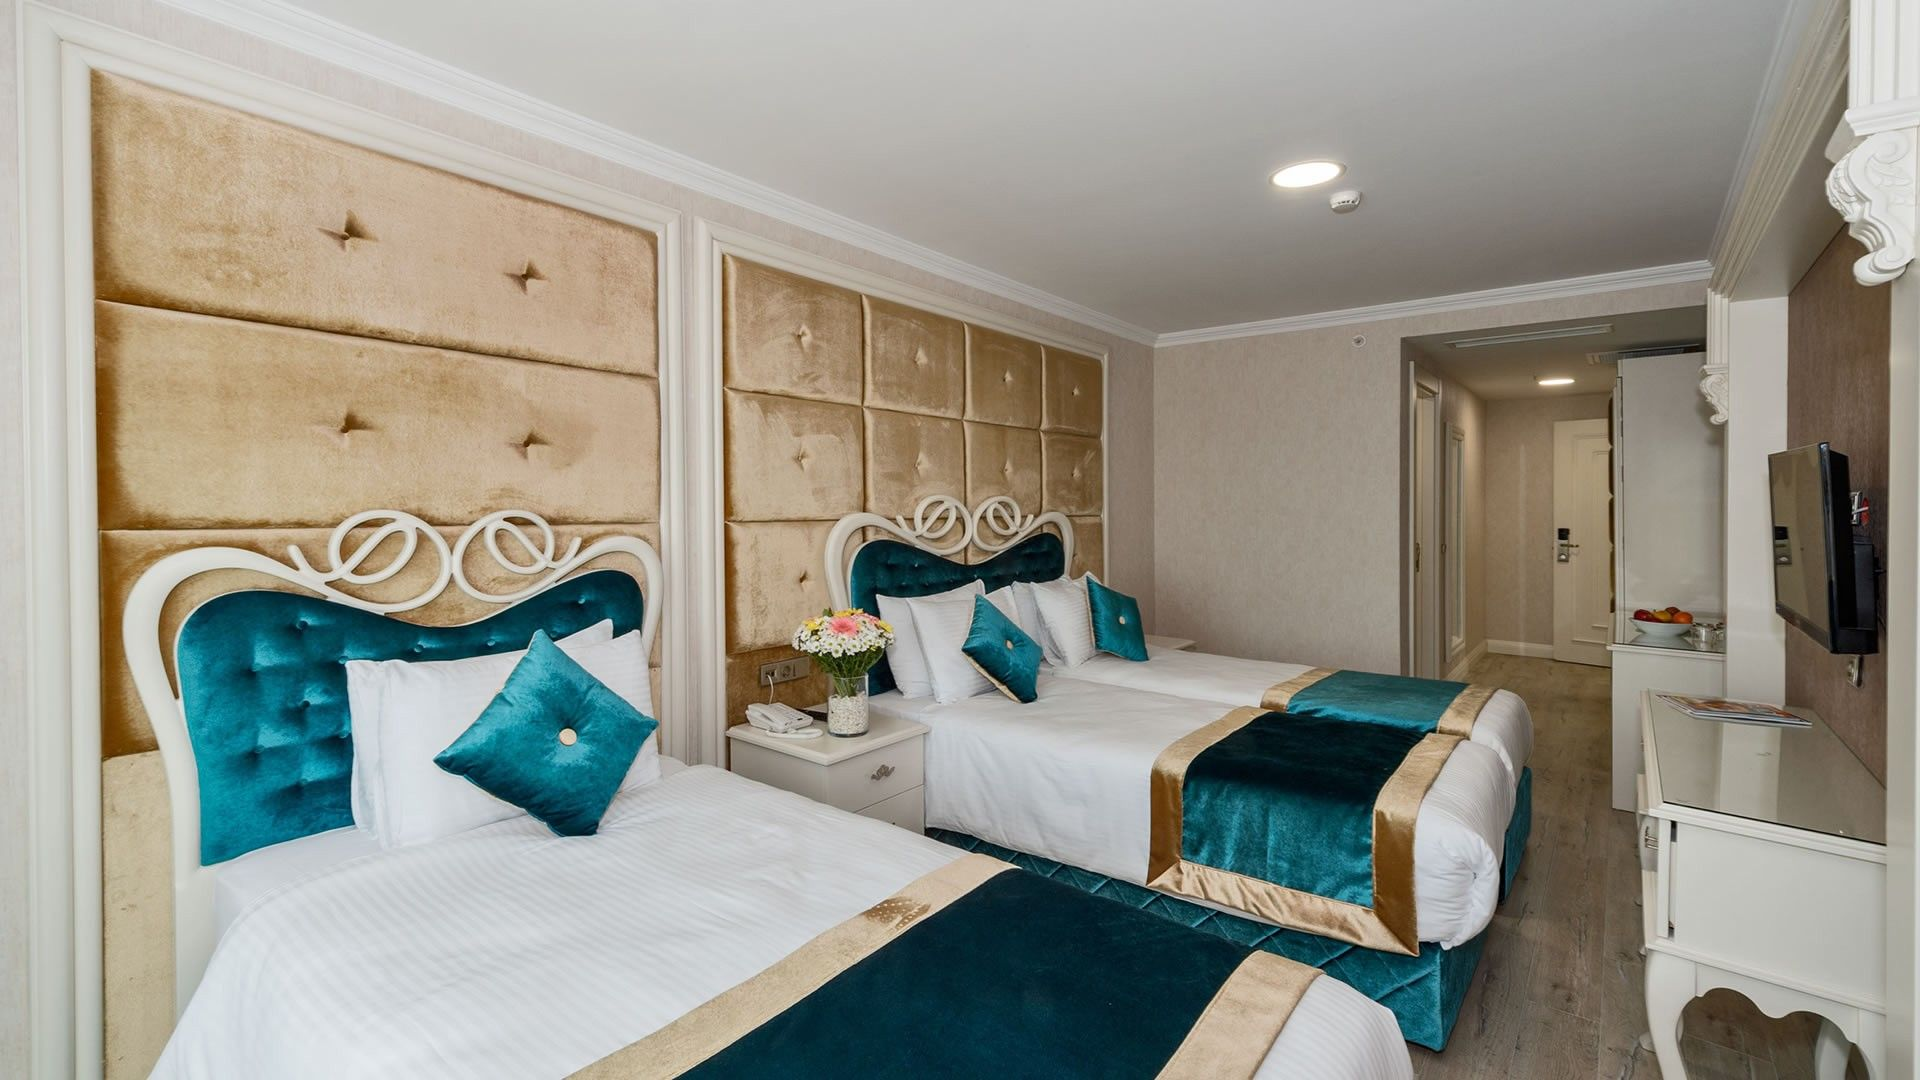 Marnas-hotels-istanbul-rooms-1